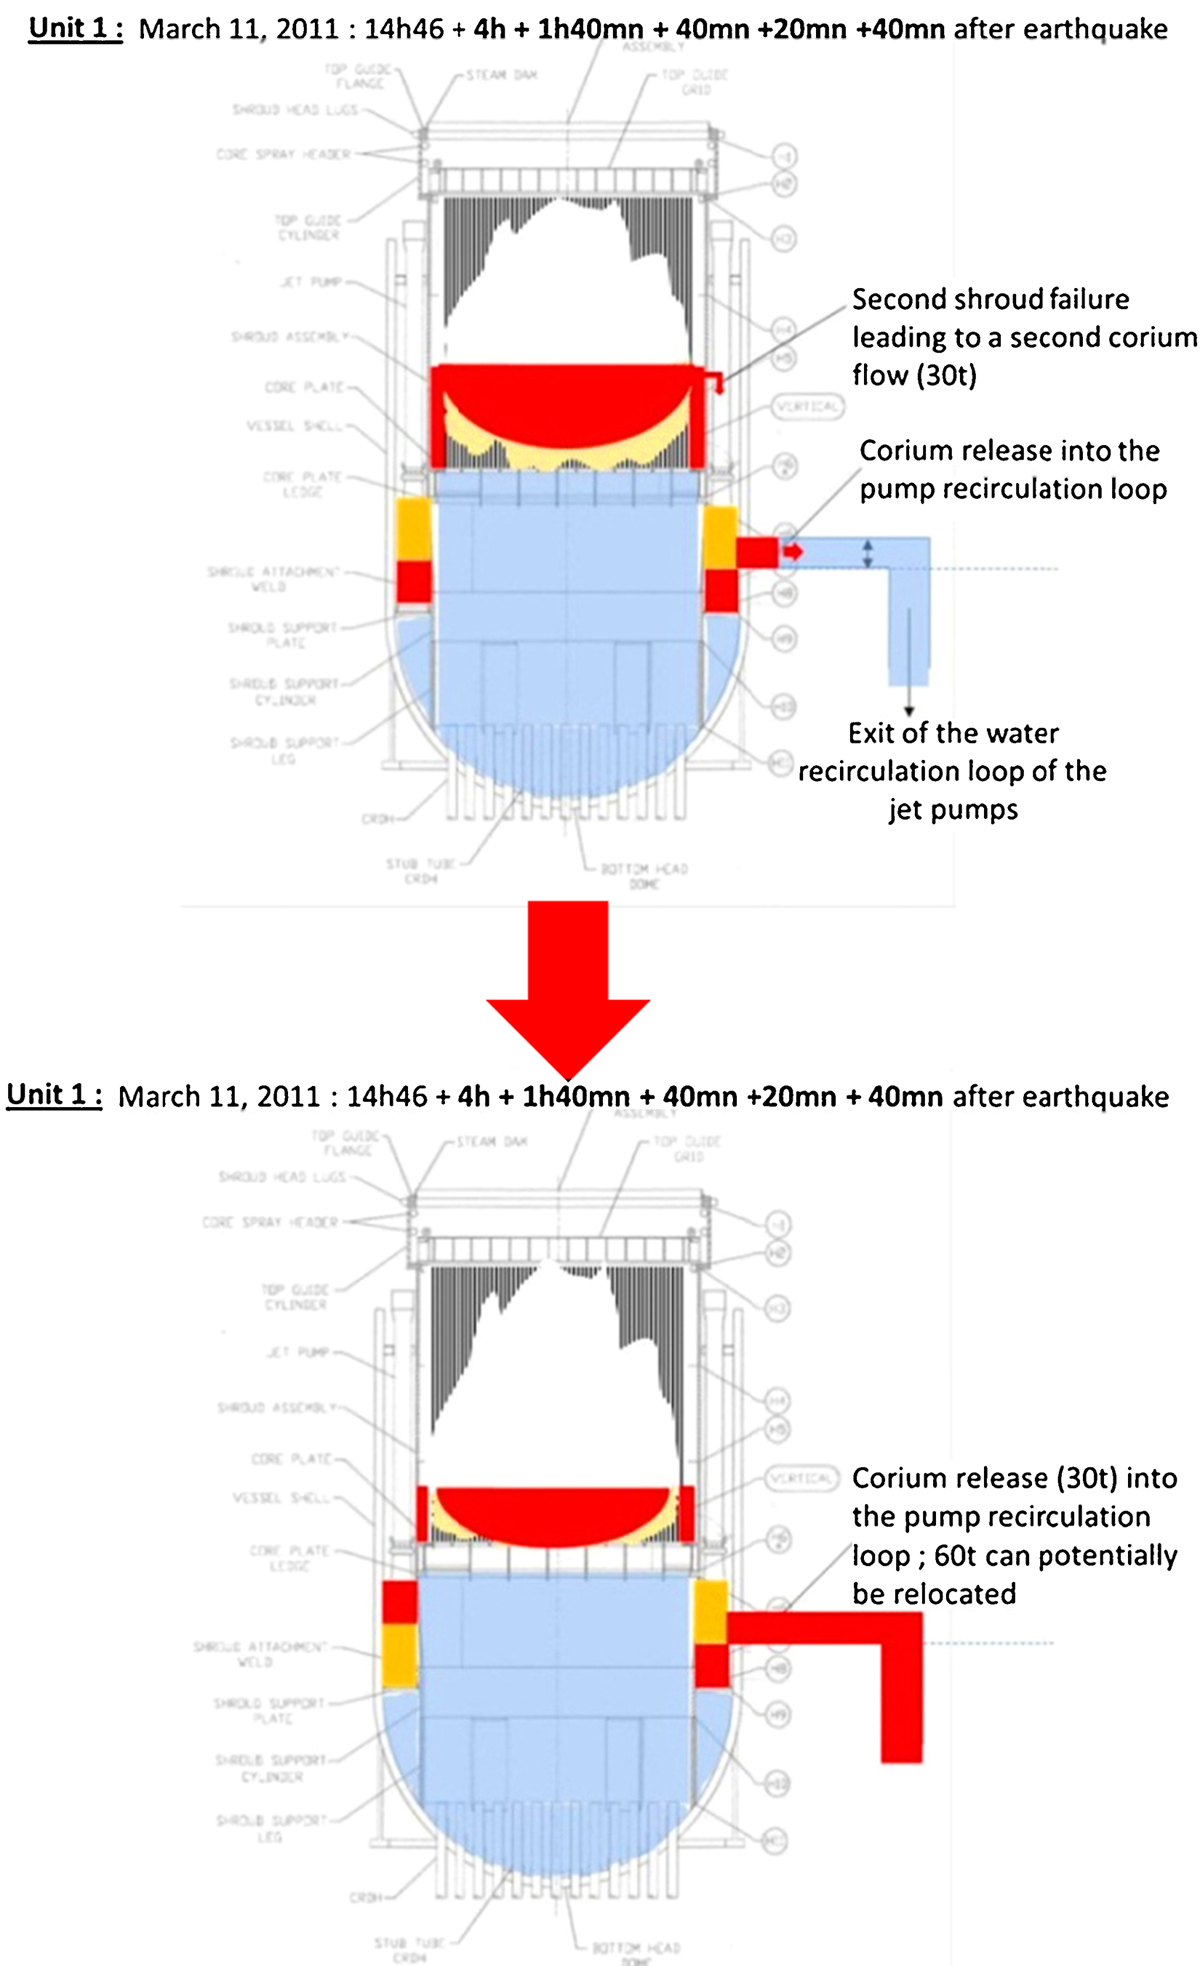 Possible In Vessel Corium Progression Way The Unit 1 Of Fukushima Nuclear Power Plant Flow Diagram Click To View Fullscreen